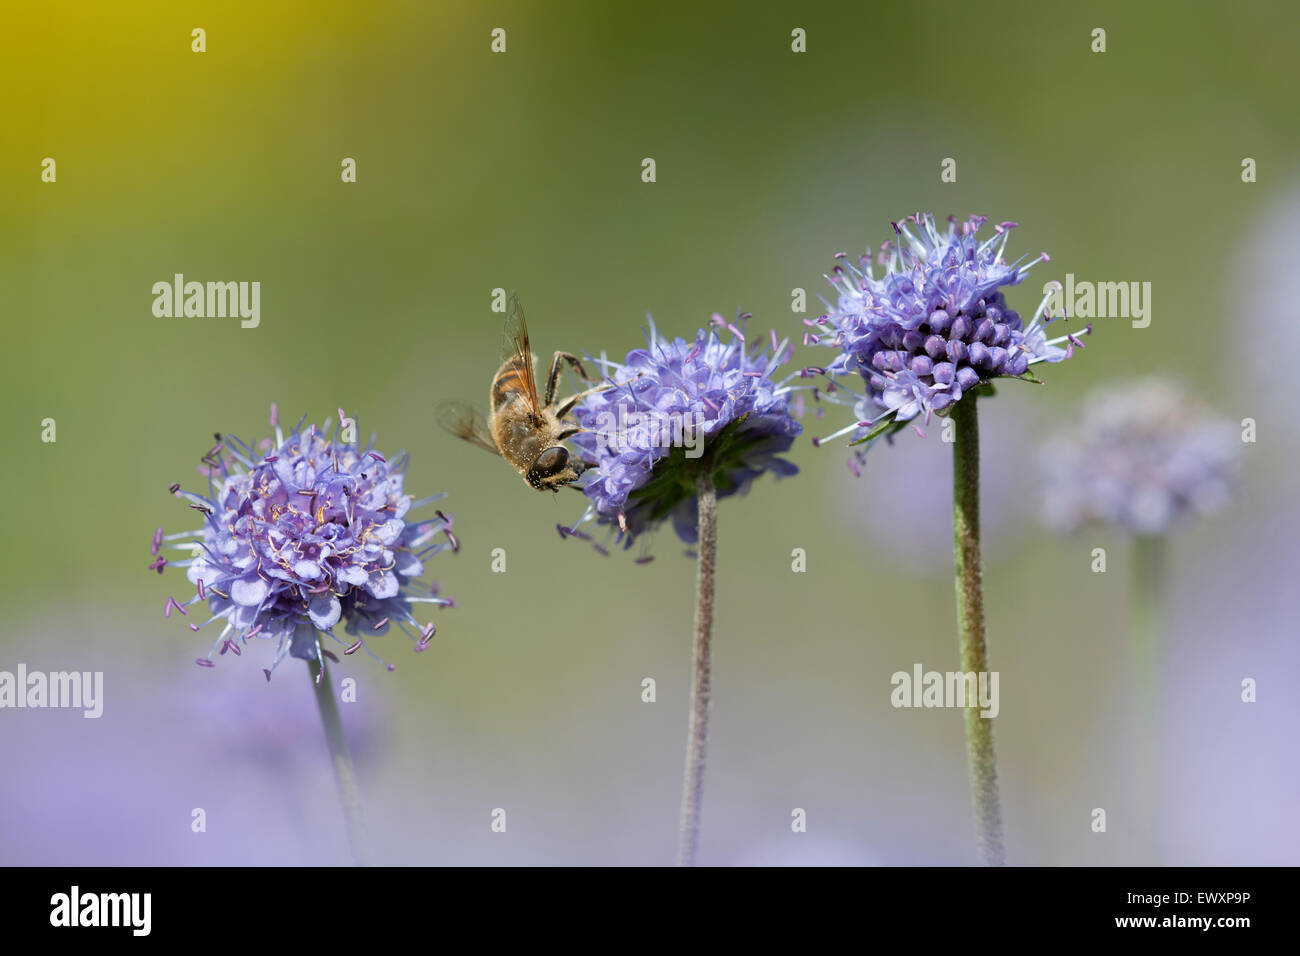 Devil's-bit Scabious,Succisa pratensis flowering on chalk grassland on The South Downs National Park,Great Britain - Stock Image